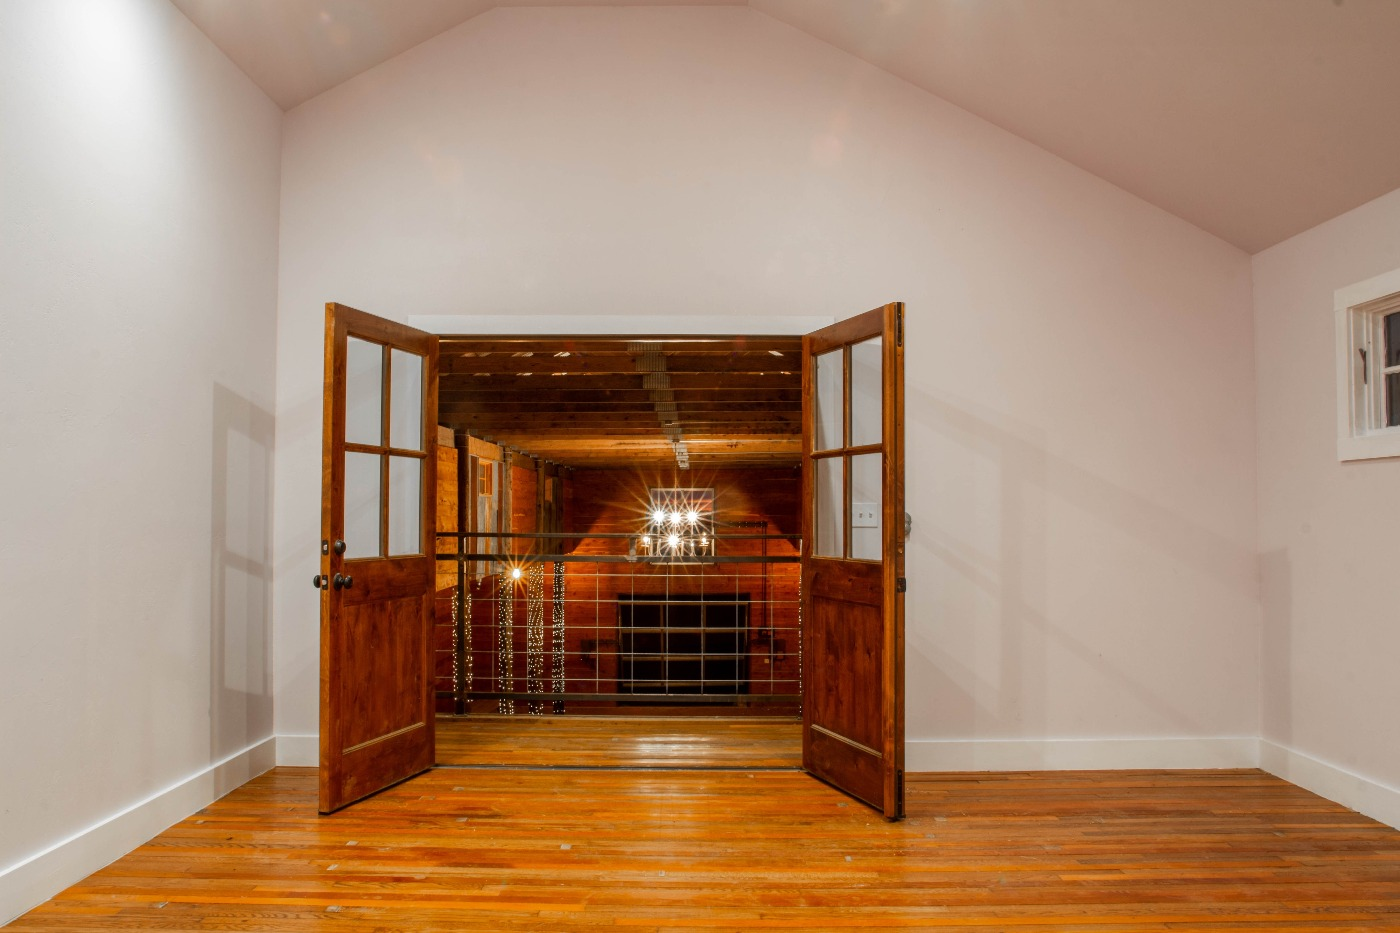 event center day2 k.jpg